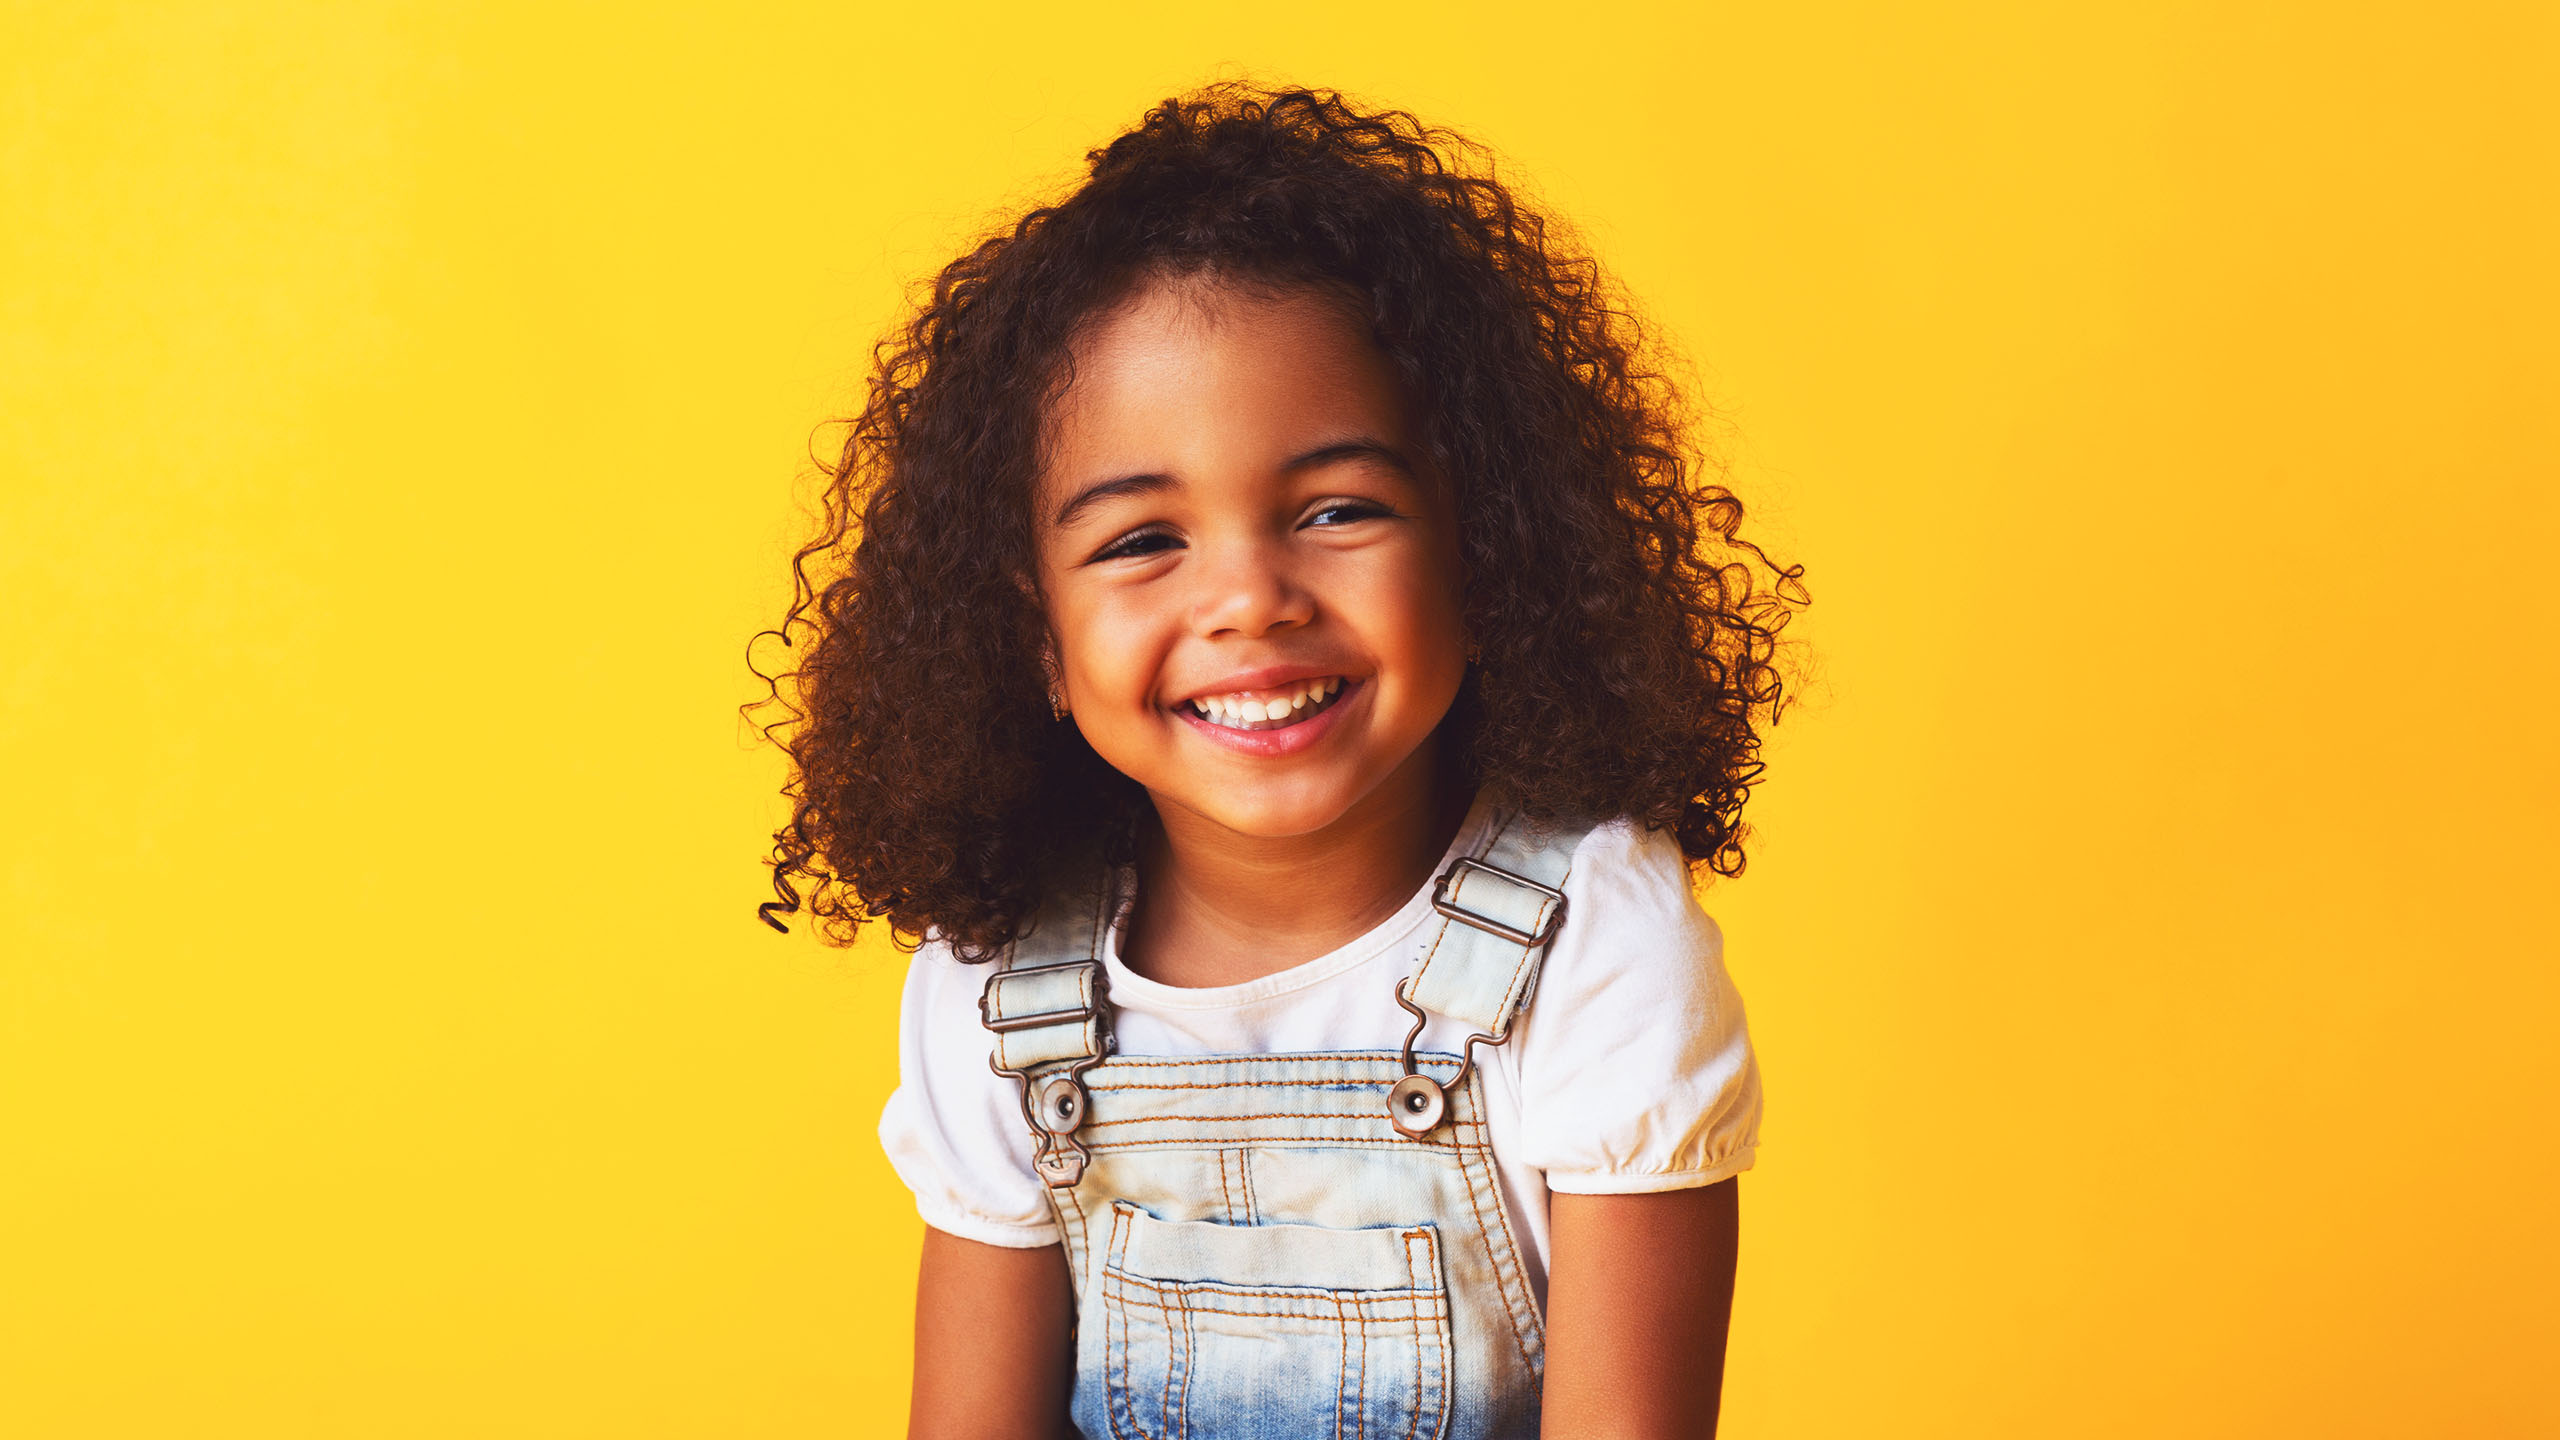 A young child smiling for a photograph